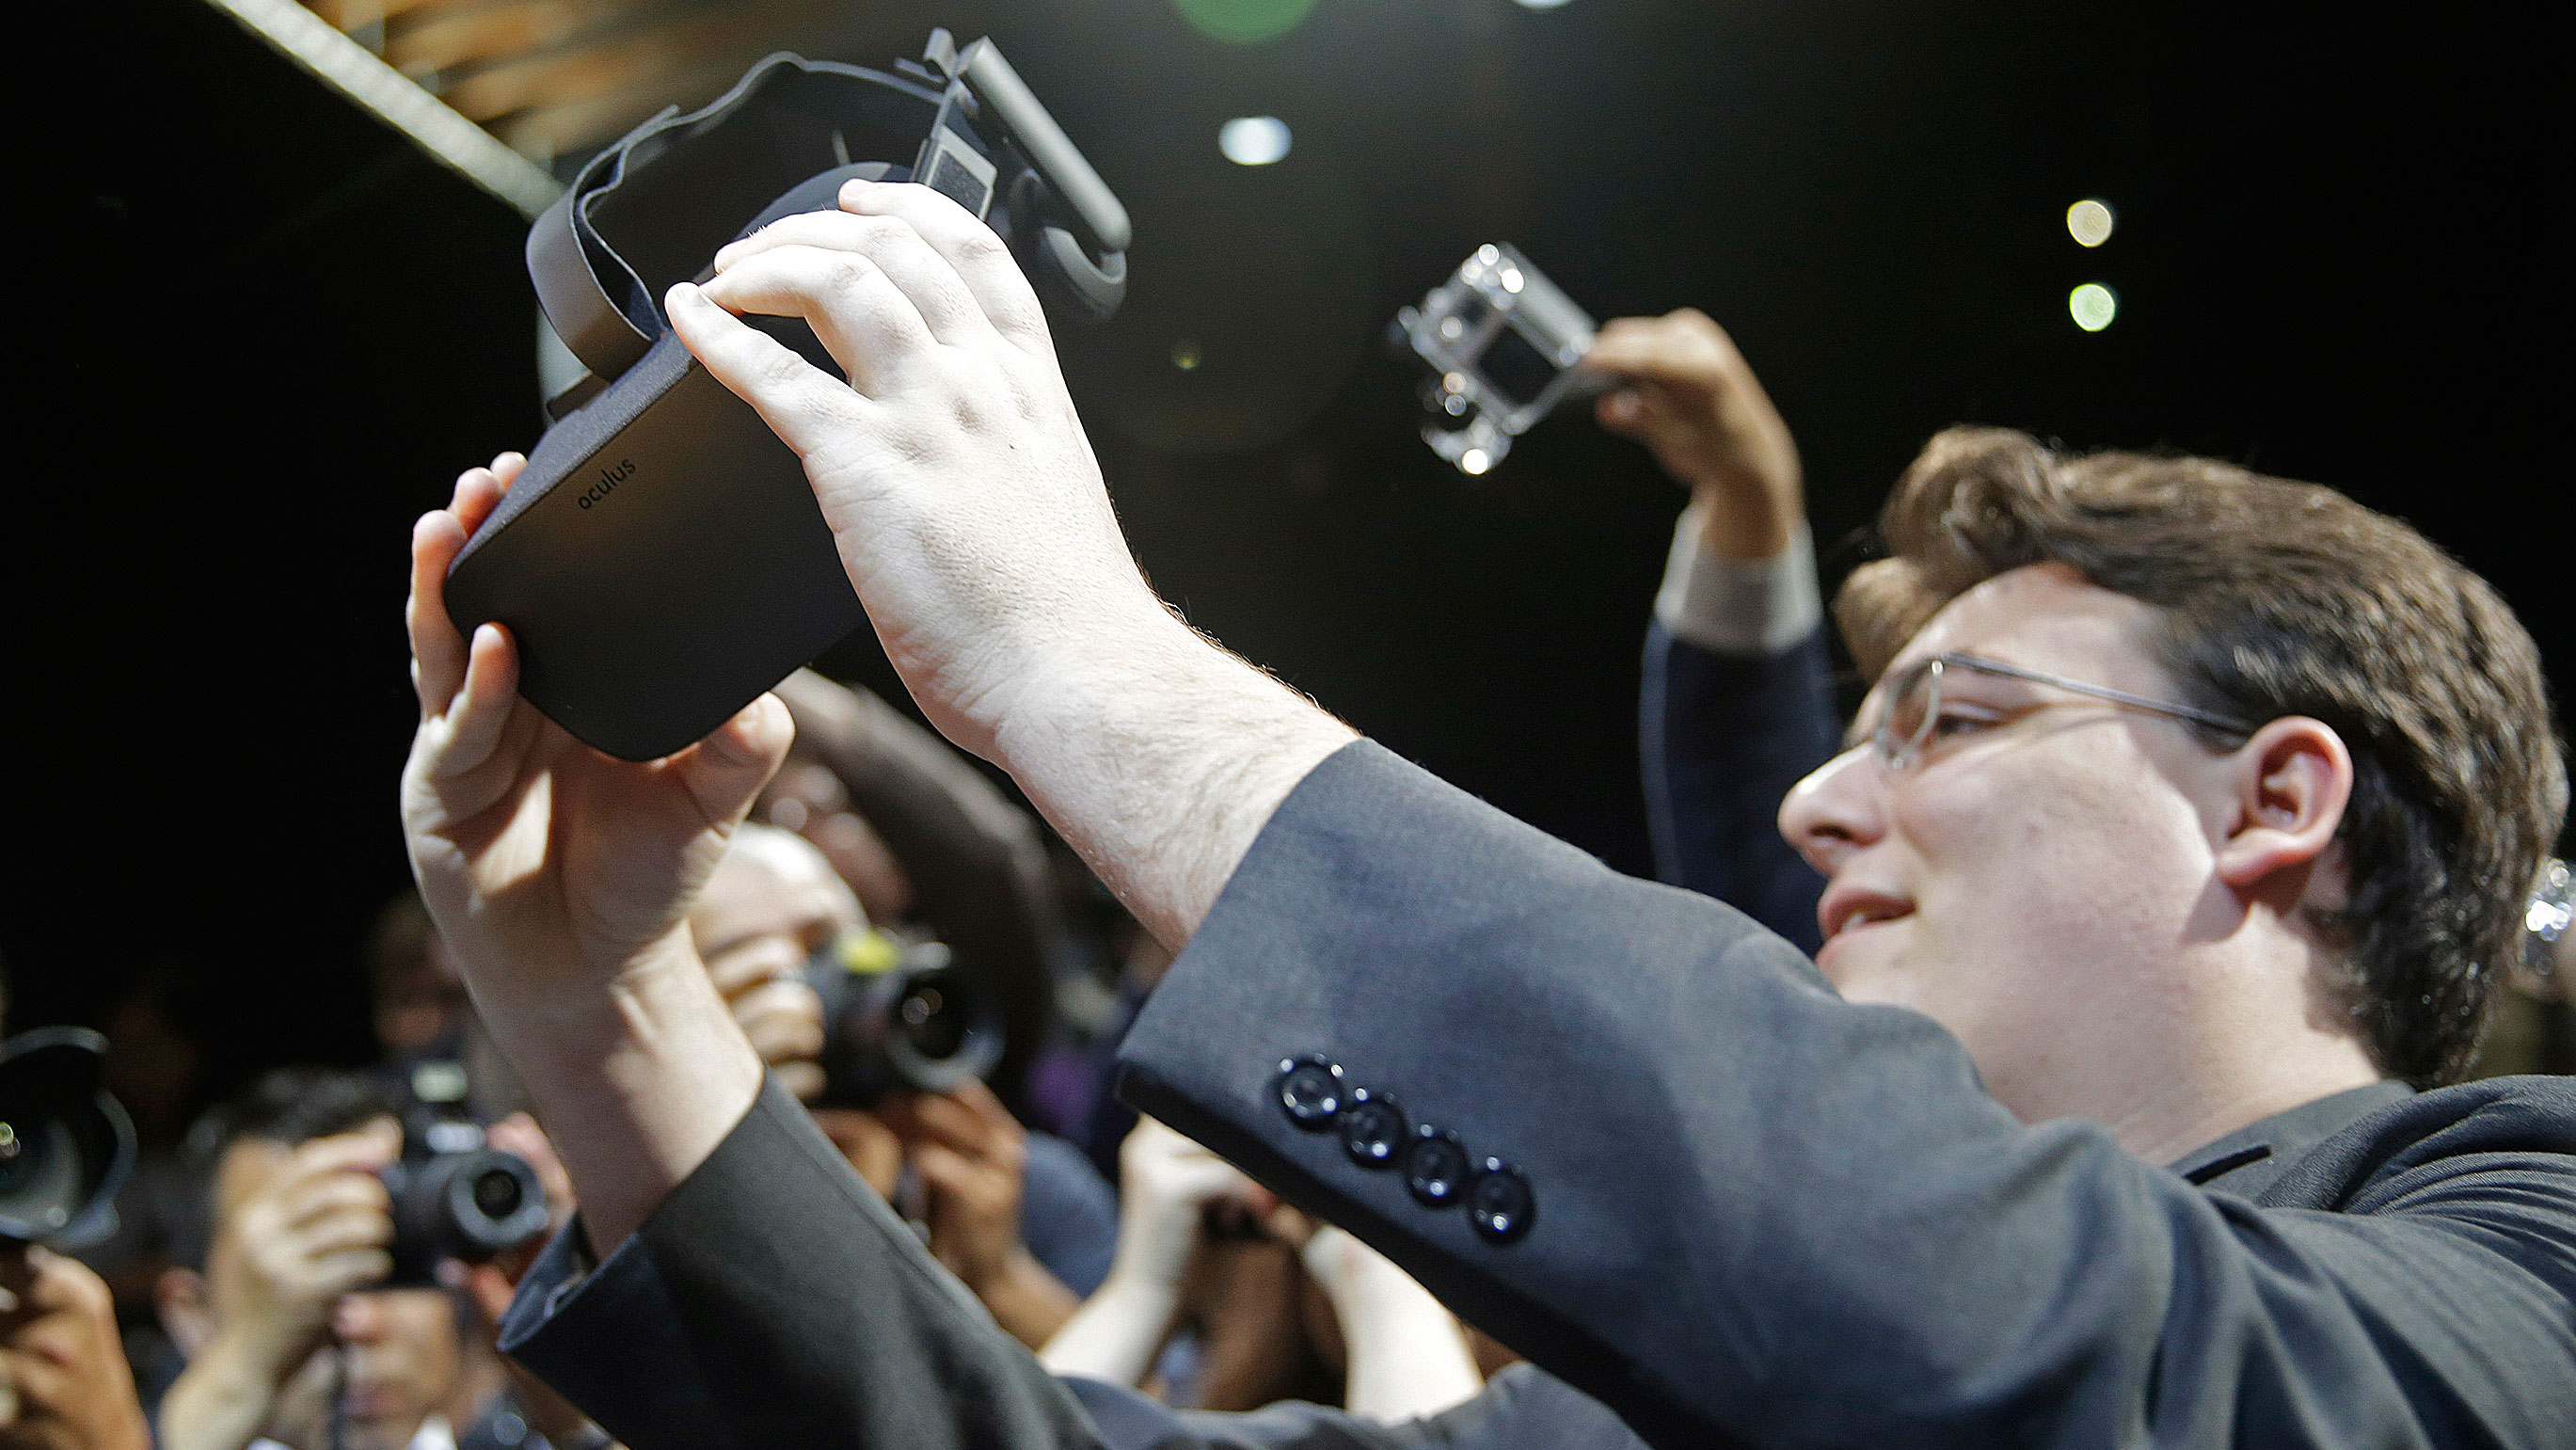 Oculus founder Palmer Luckey holds up the new Oculus Rift virtual reality headset for photographers following a news conference Thursday, June 11, 2015, in San Francisco.(AP Photo/Eric Risberg)